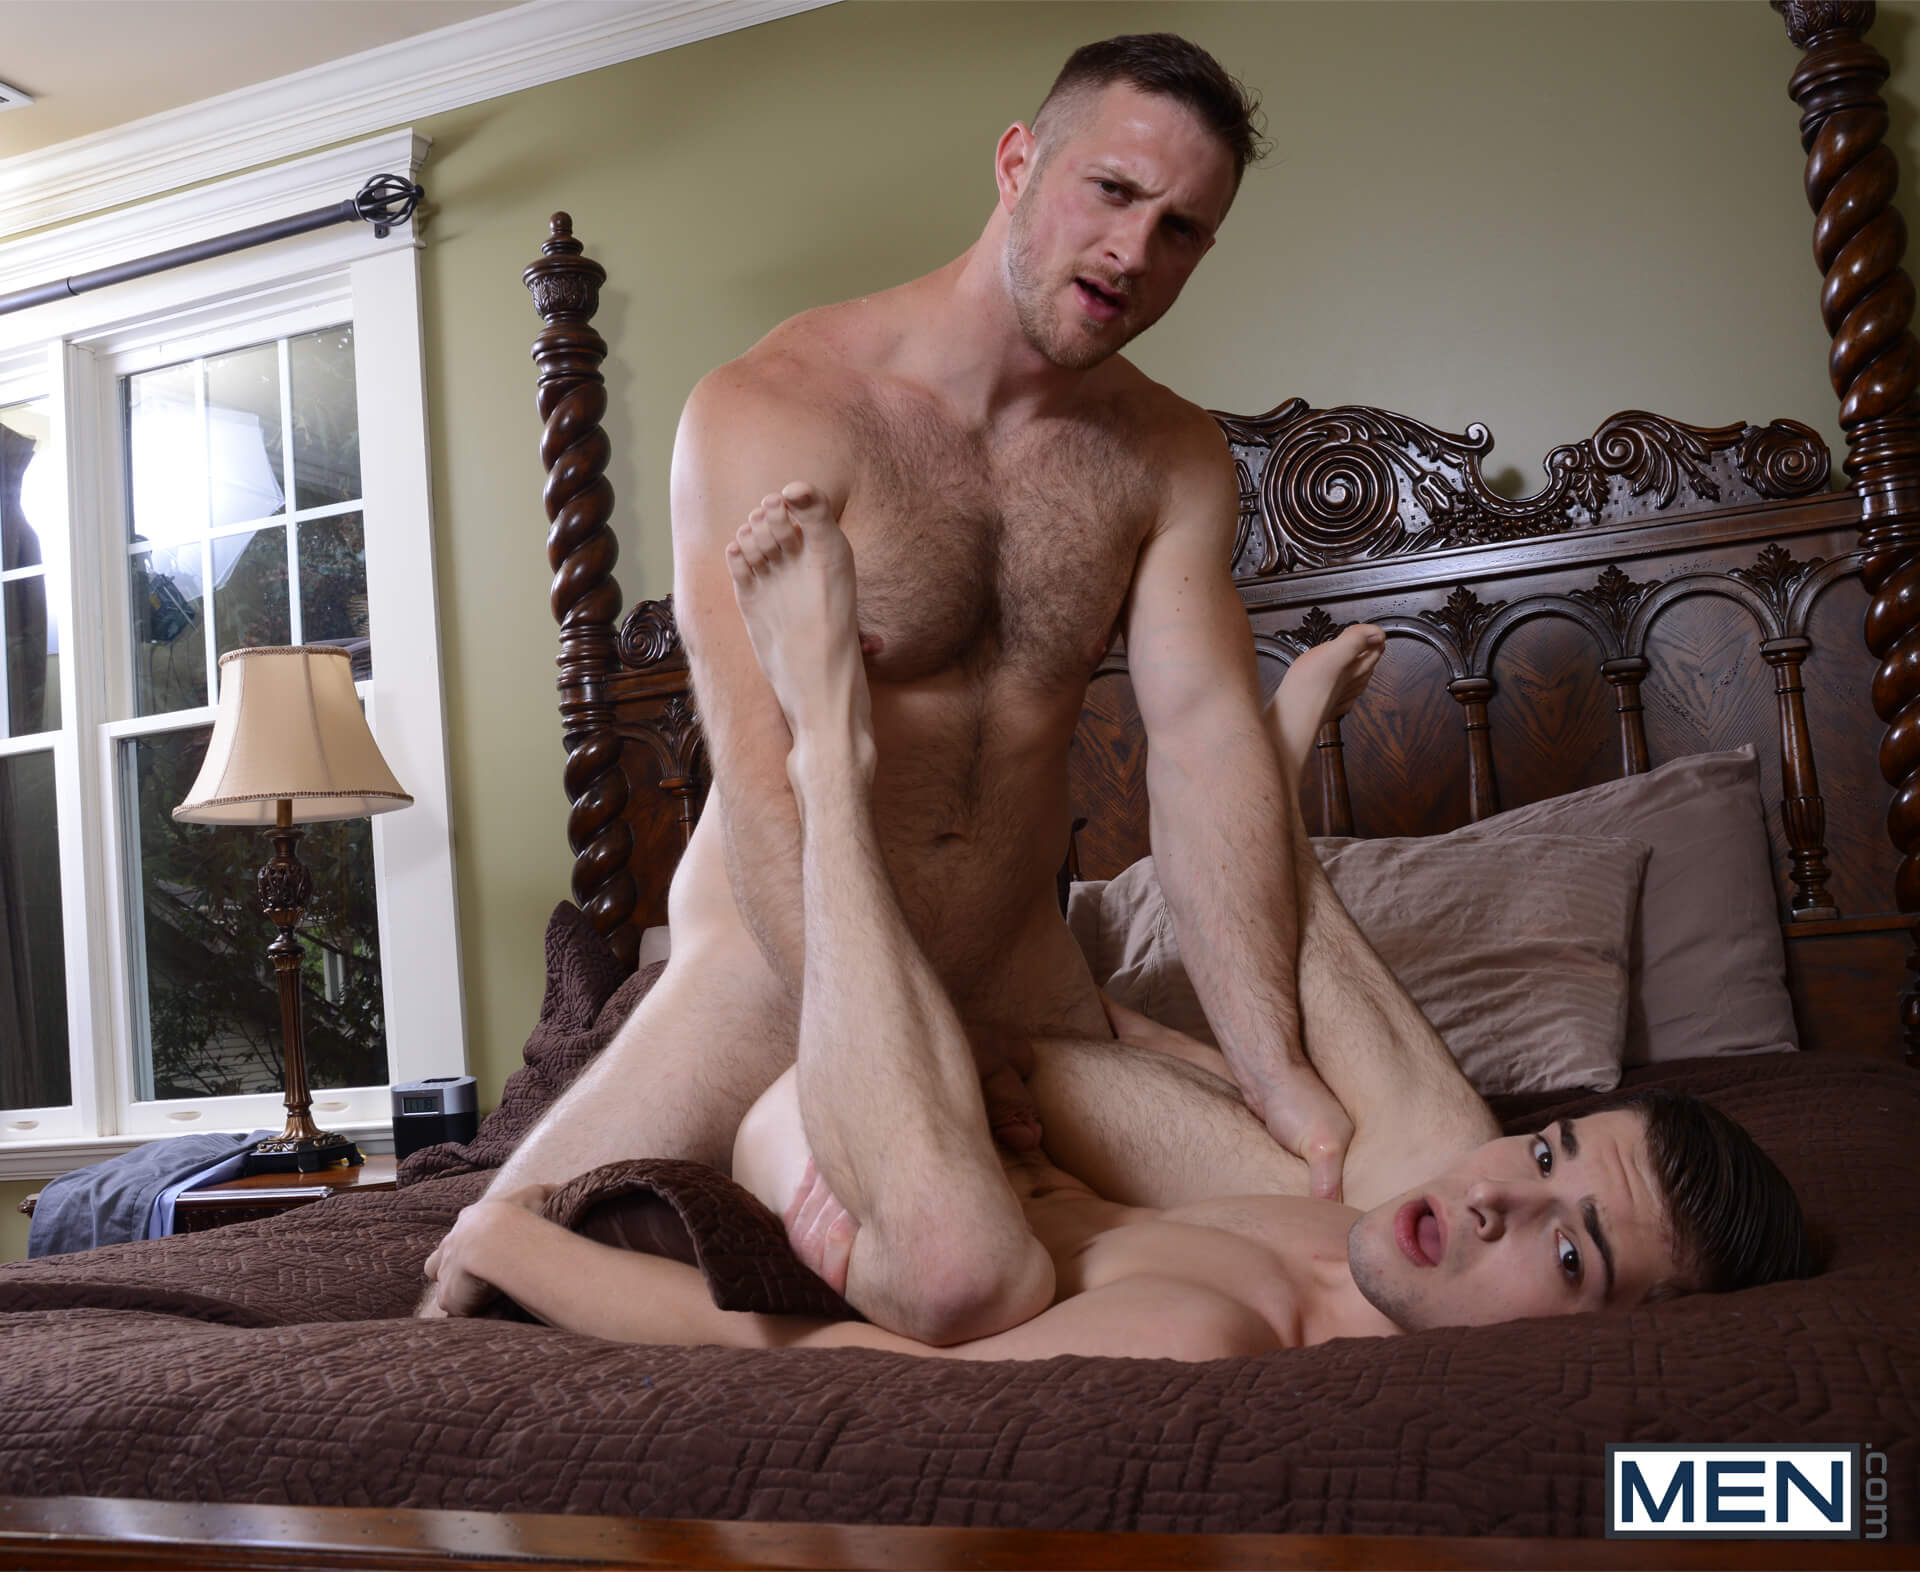 MEN.COM » Drill My Hole » Houseboy Part 1 » Johnny Rapid » Paul Wagner